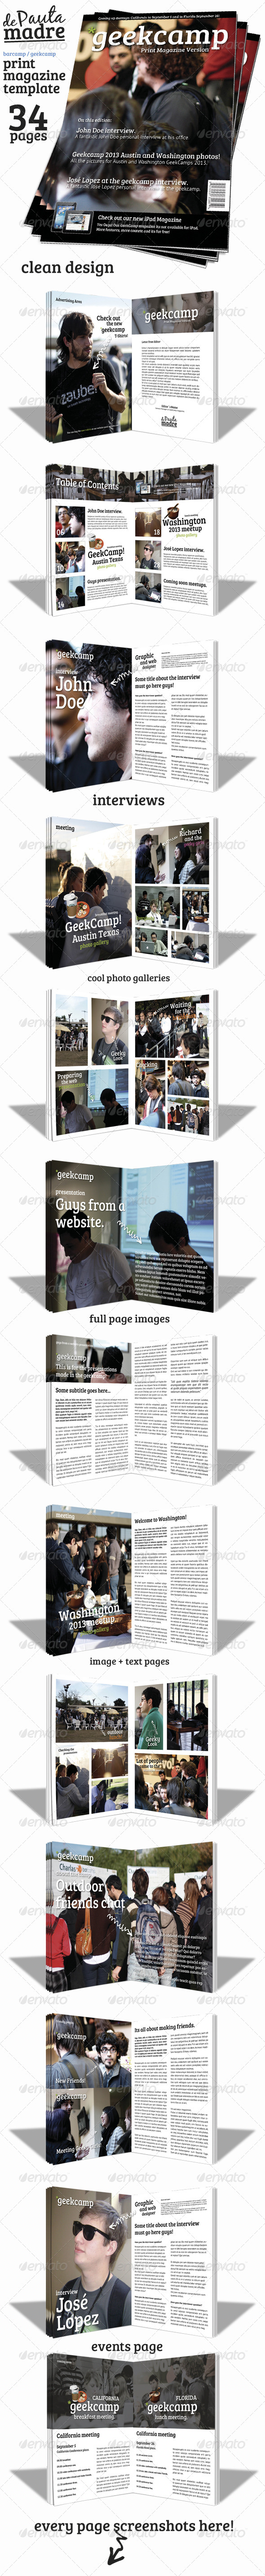 GraphicRiver Barcamp-Geekcamp Magazine Template 4964231